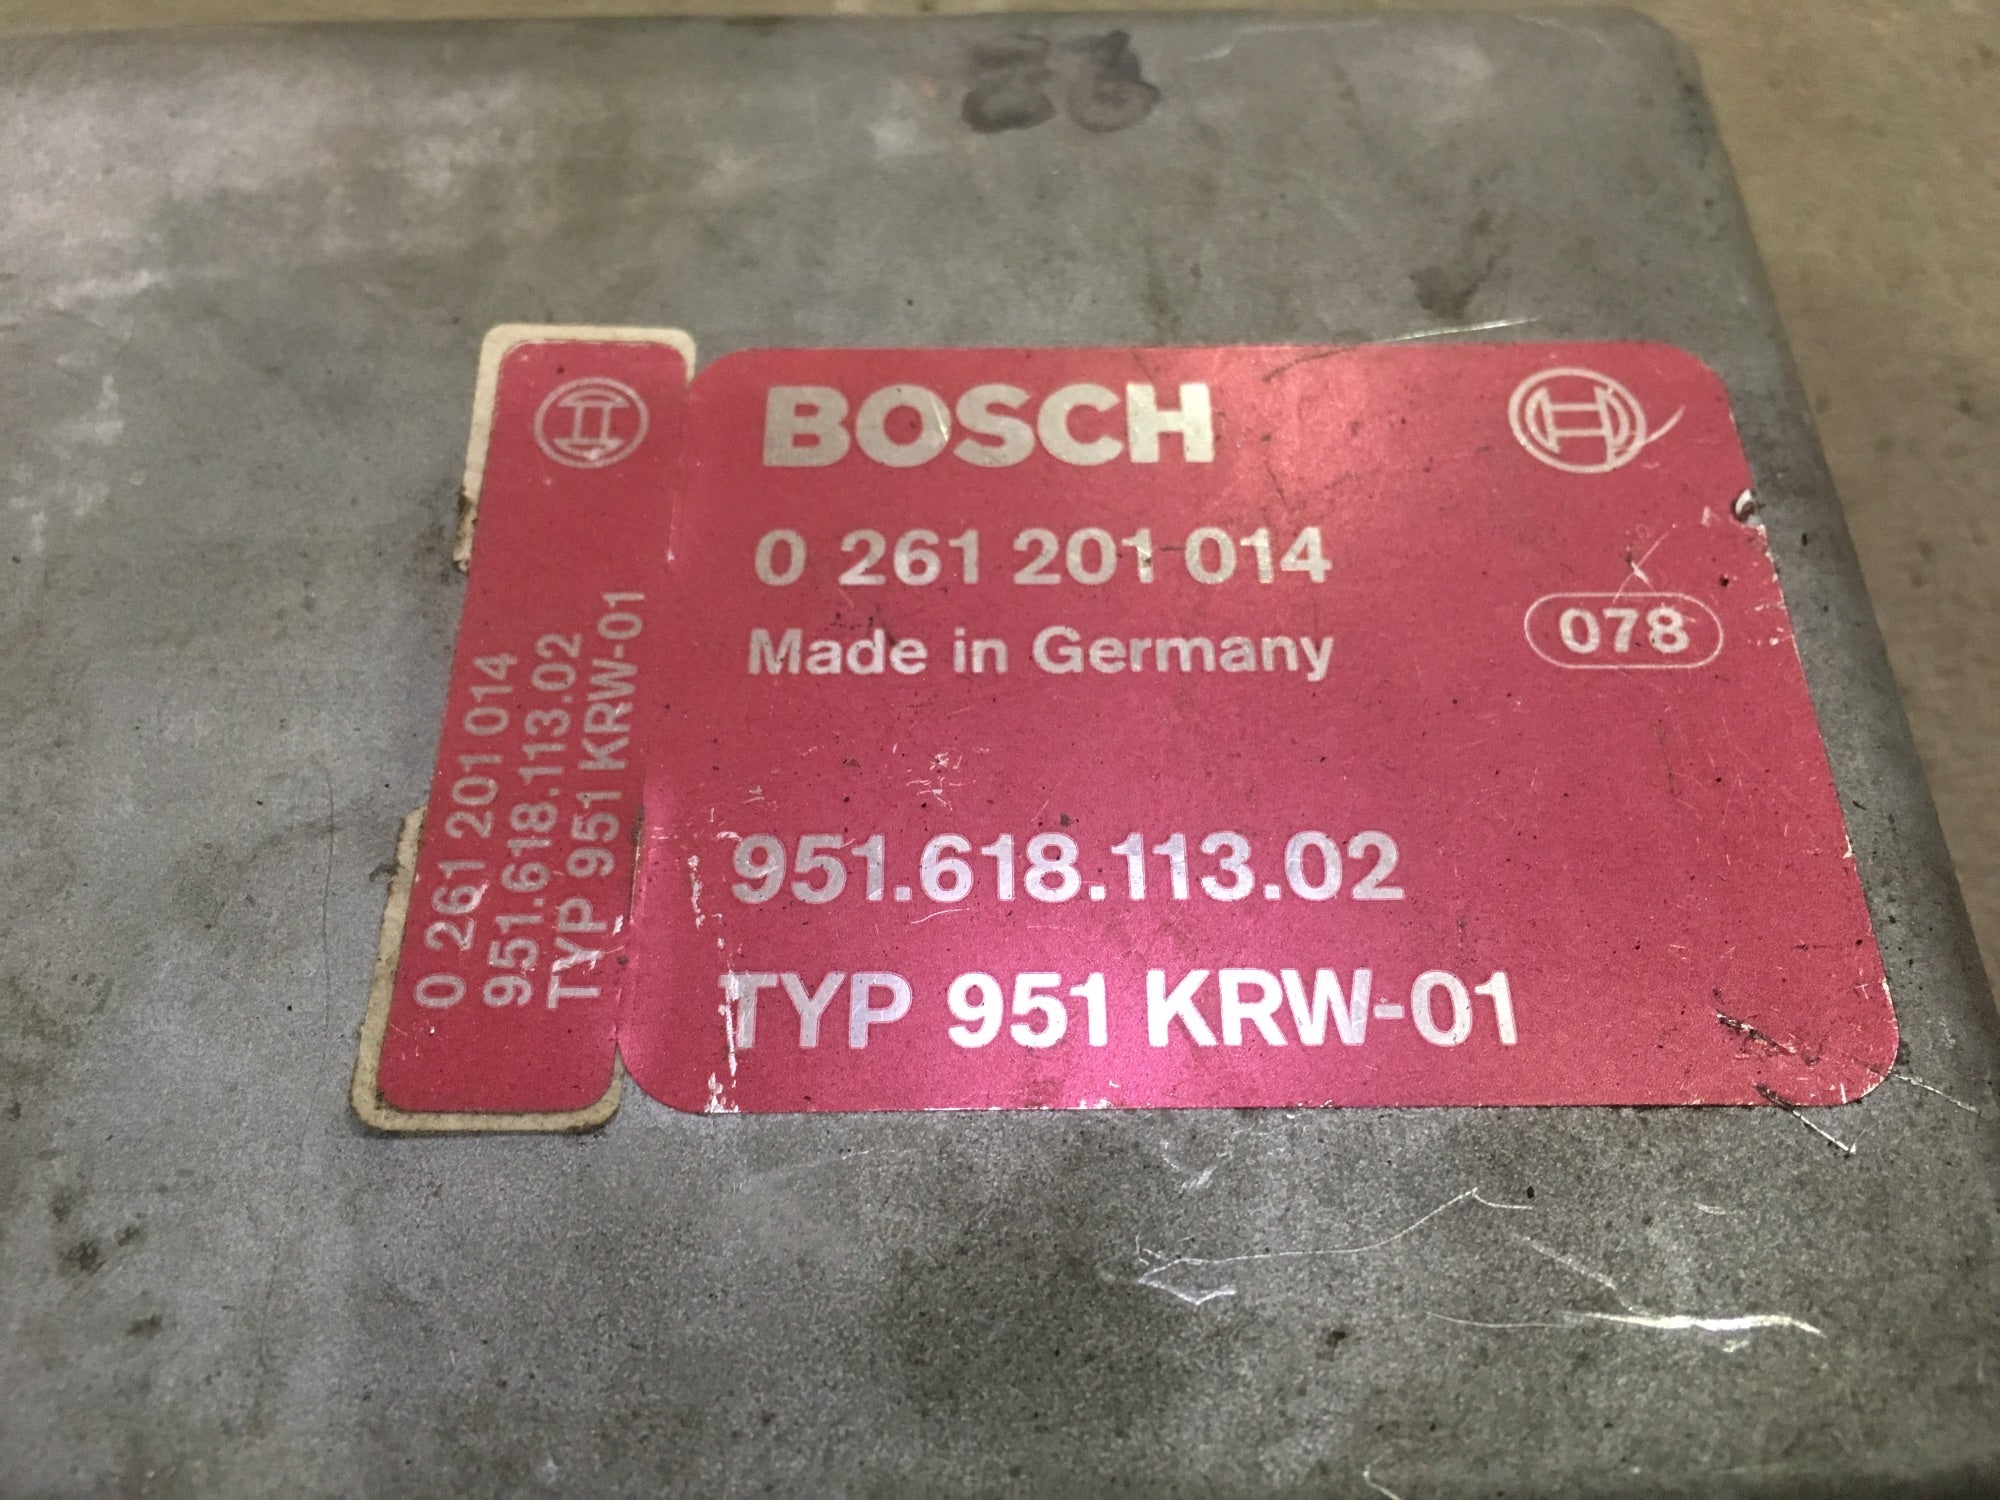 Porsche 944 Turbo Anti Knock Control Unit - 951 618 113 02 Bosch 0 261 201 14 - Woolies Workshop - Porsche 924 944 spares